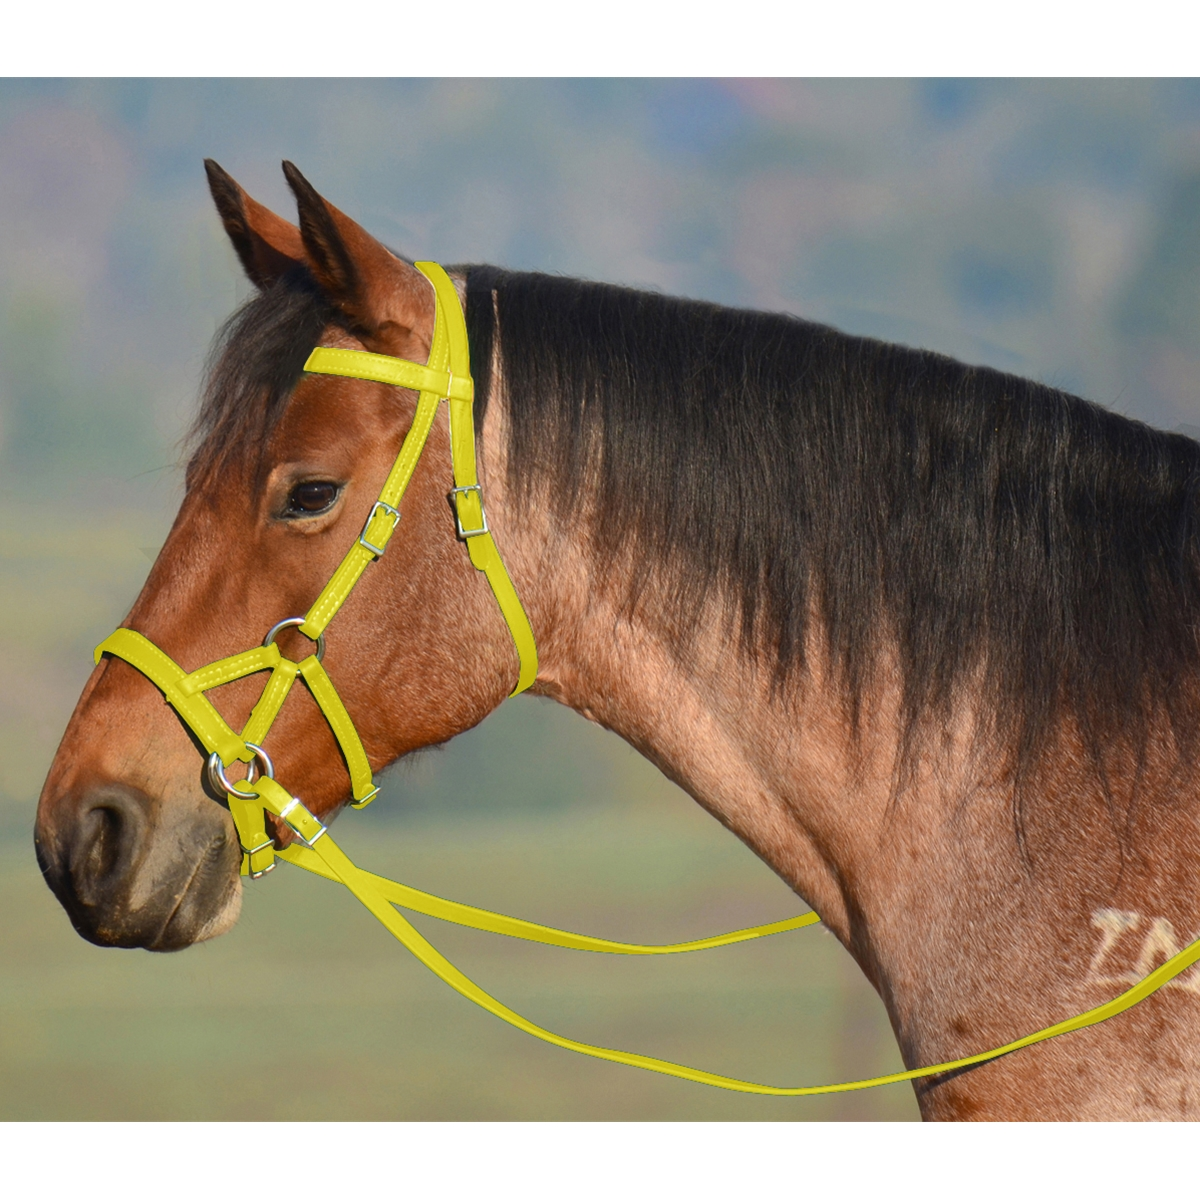 Order Sunflower Yellow Sidepull Bitless Bridle Only At Two Horse Tack